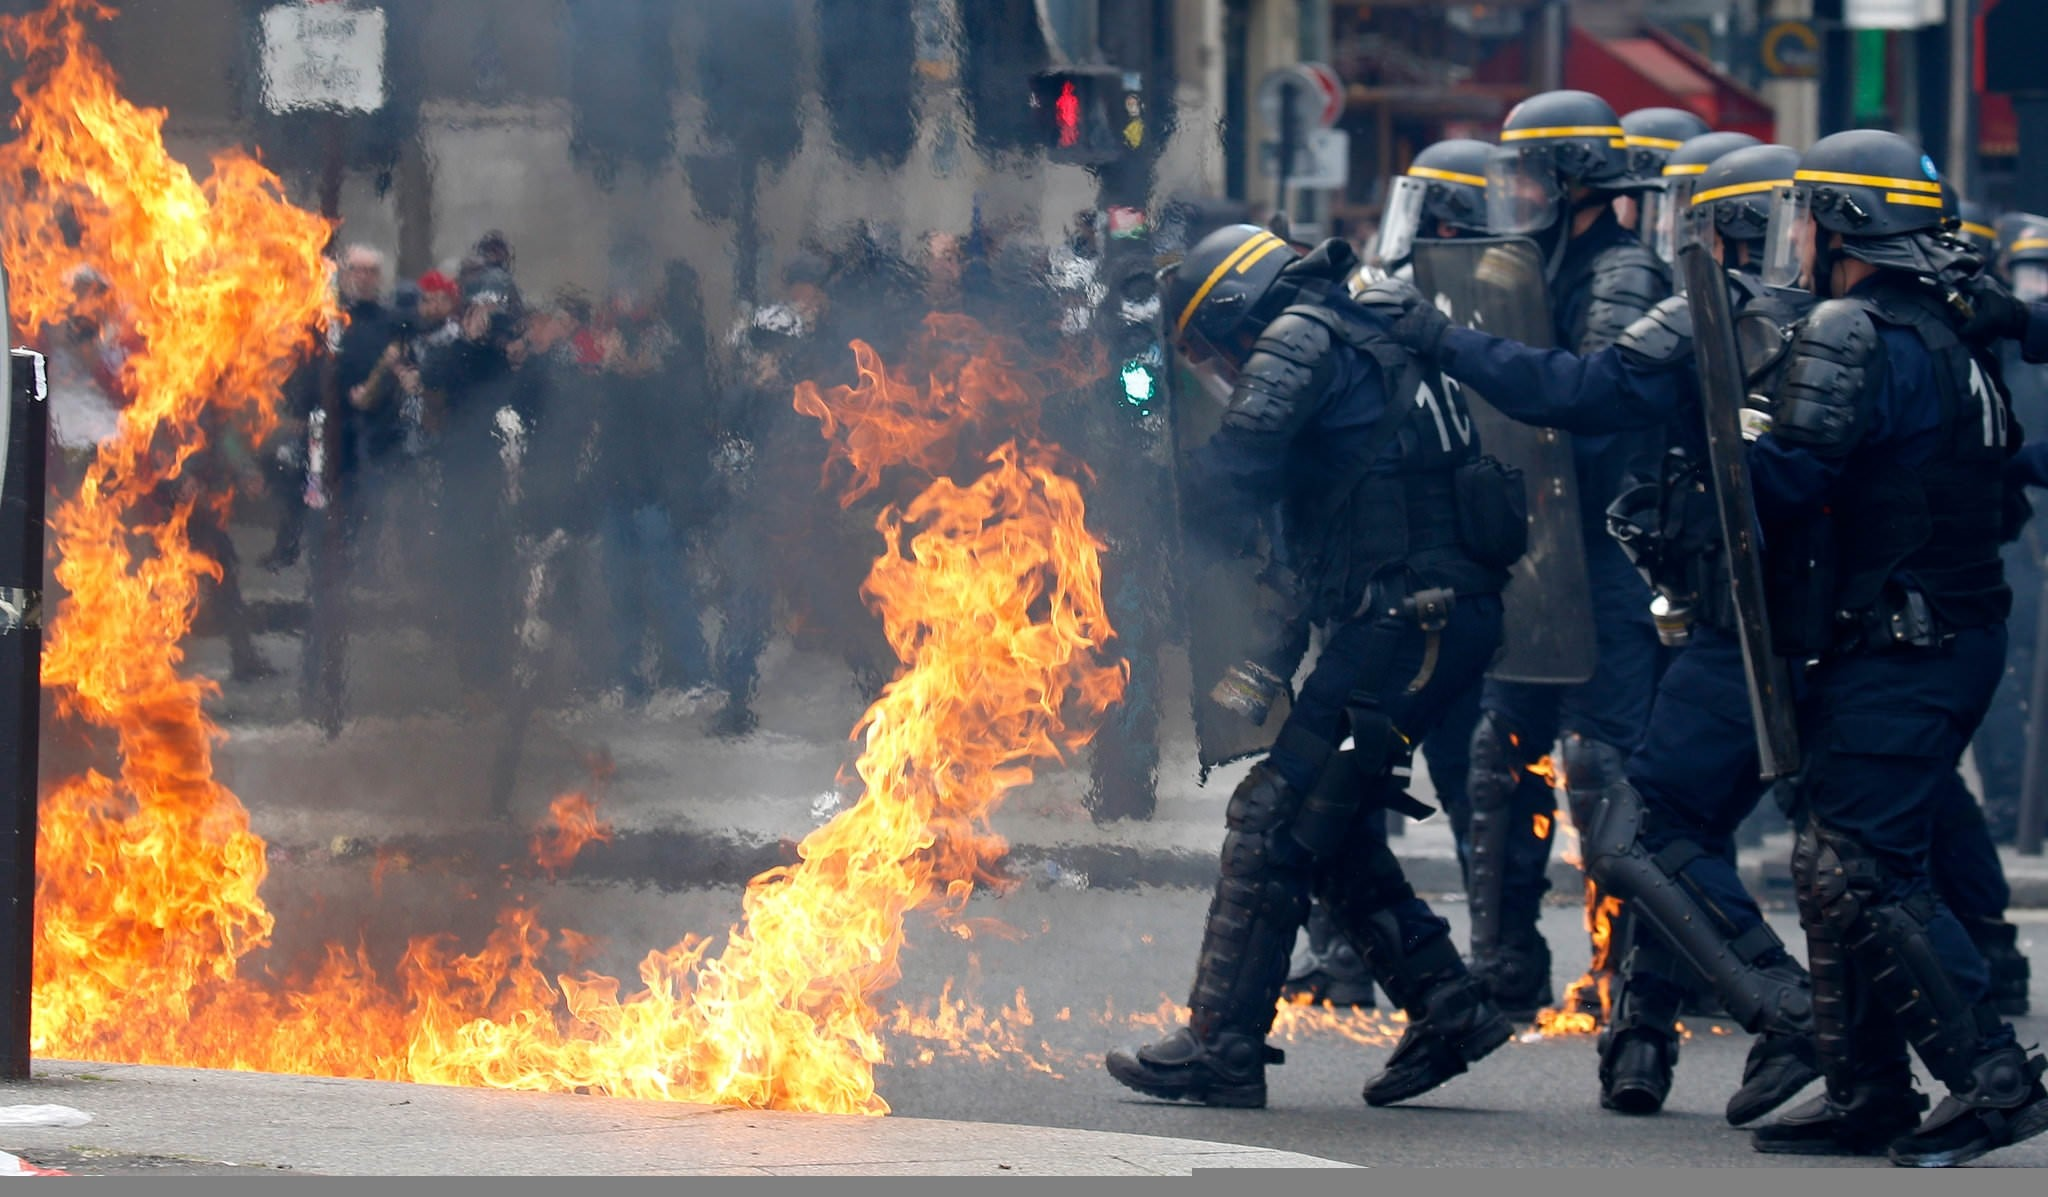 rench CRS riot police protect themselves from flames during clashes. (REUTERS Photo)